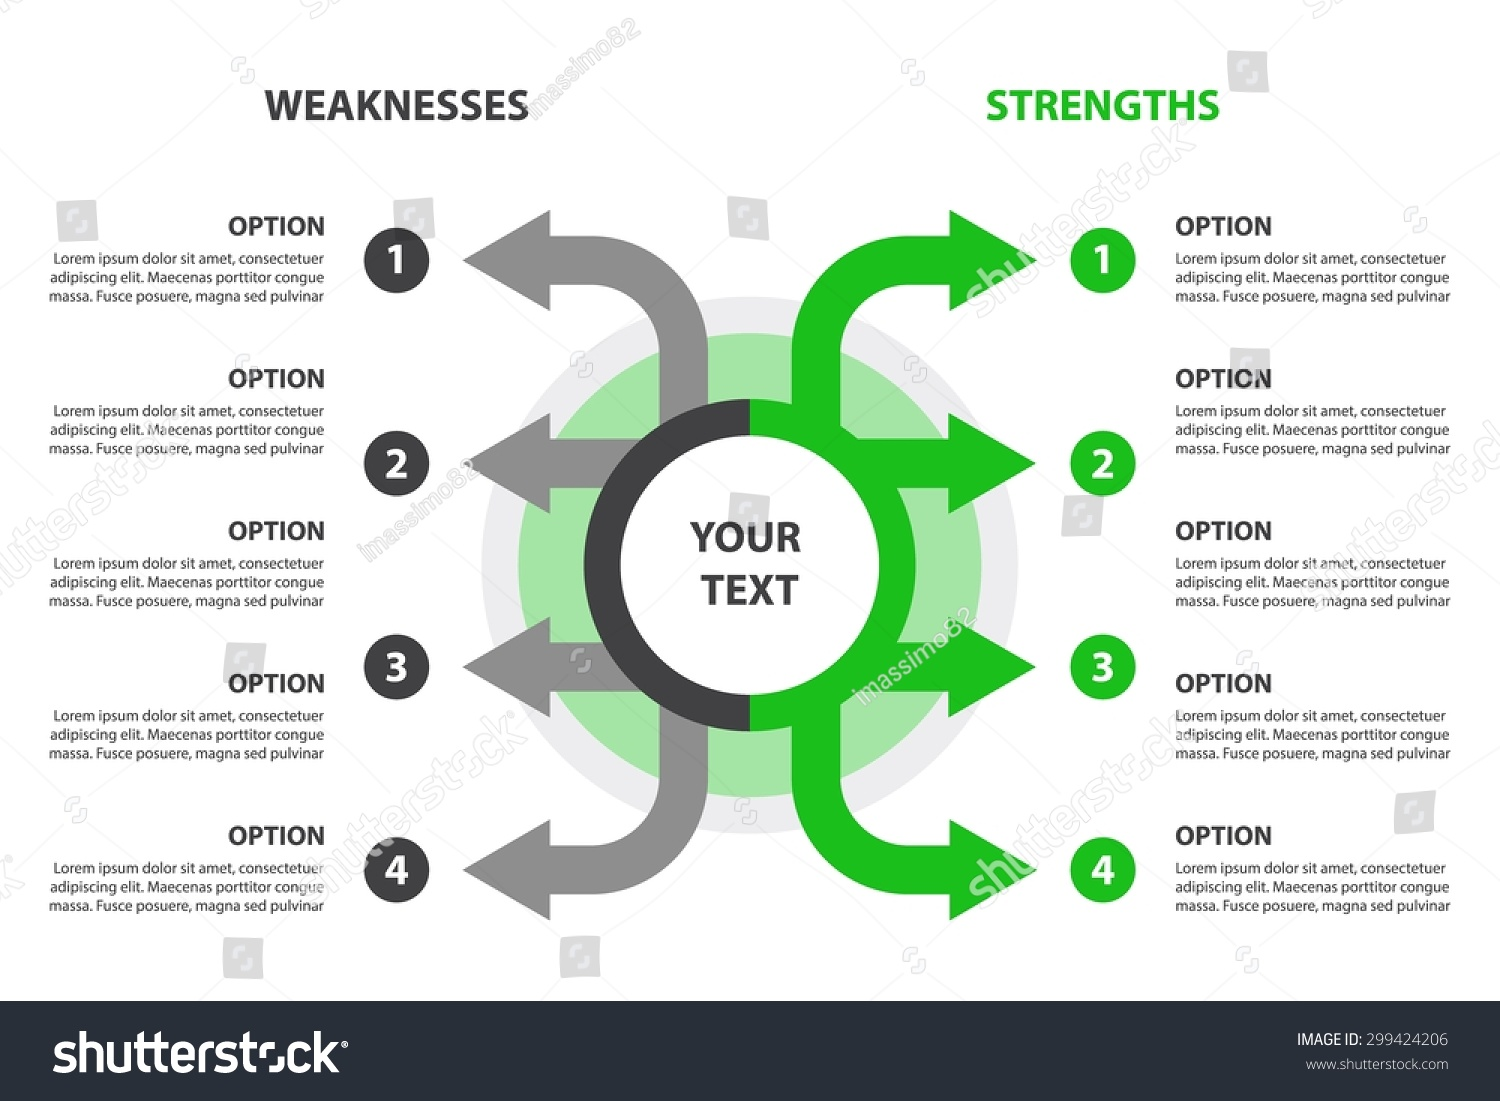 strengths weaknesses swot analysis design element stock vector strengths and weaknesses swot analysis design element 4 grey and green arrows template